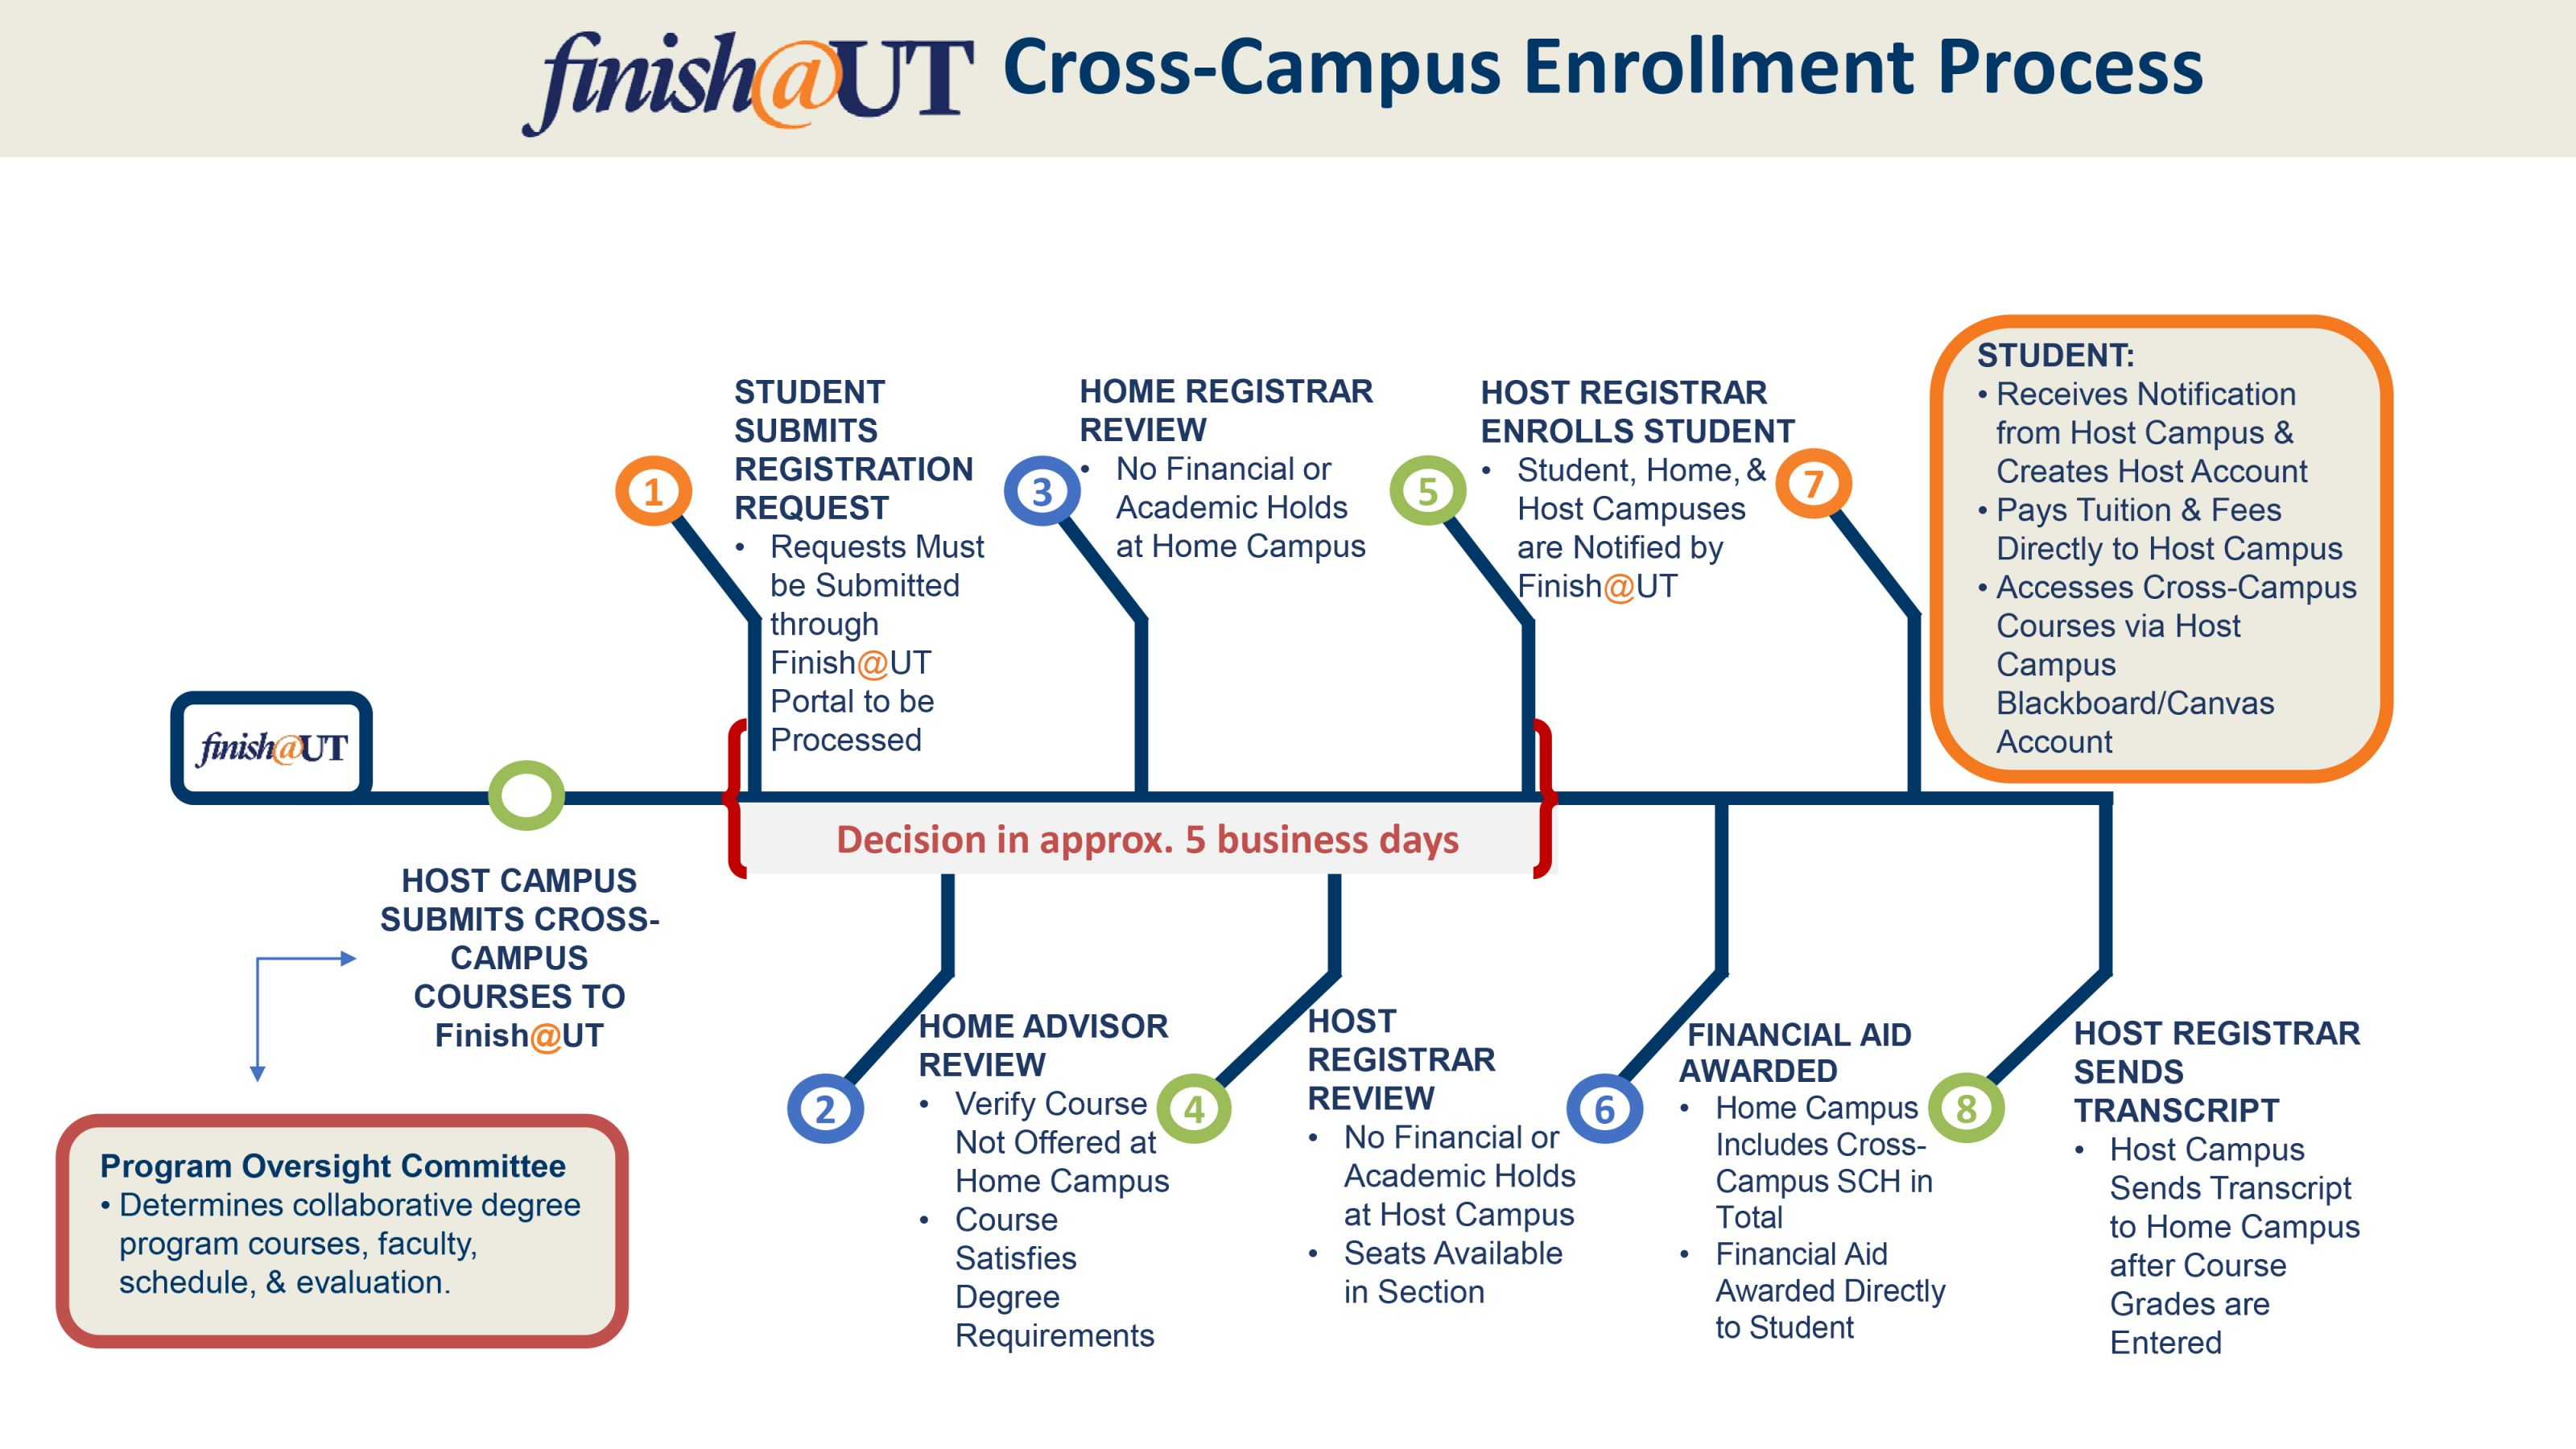 Finish@UT Cross-Campus Enrollment Process Graphic